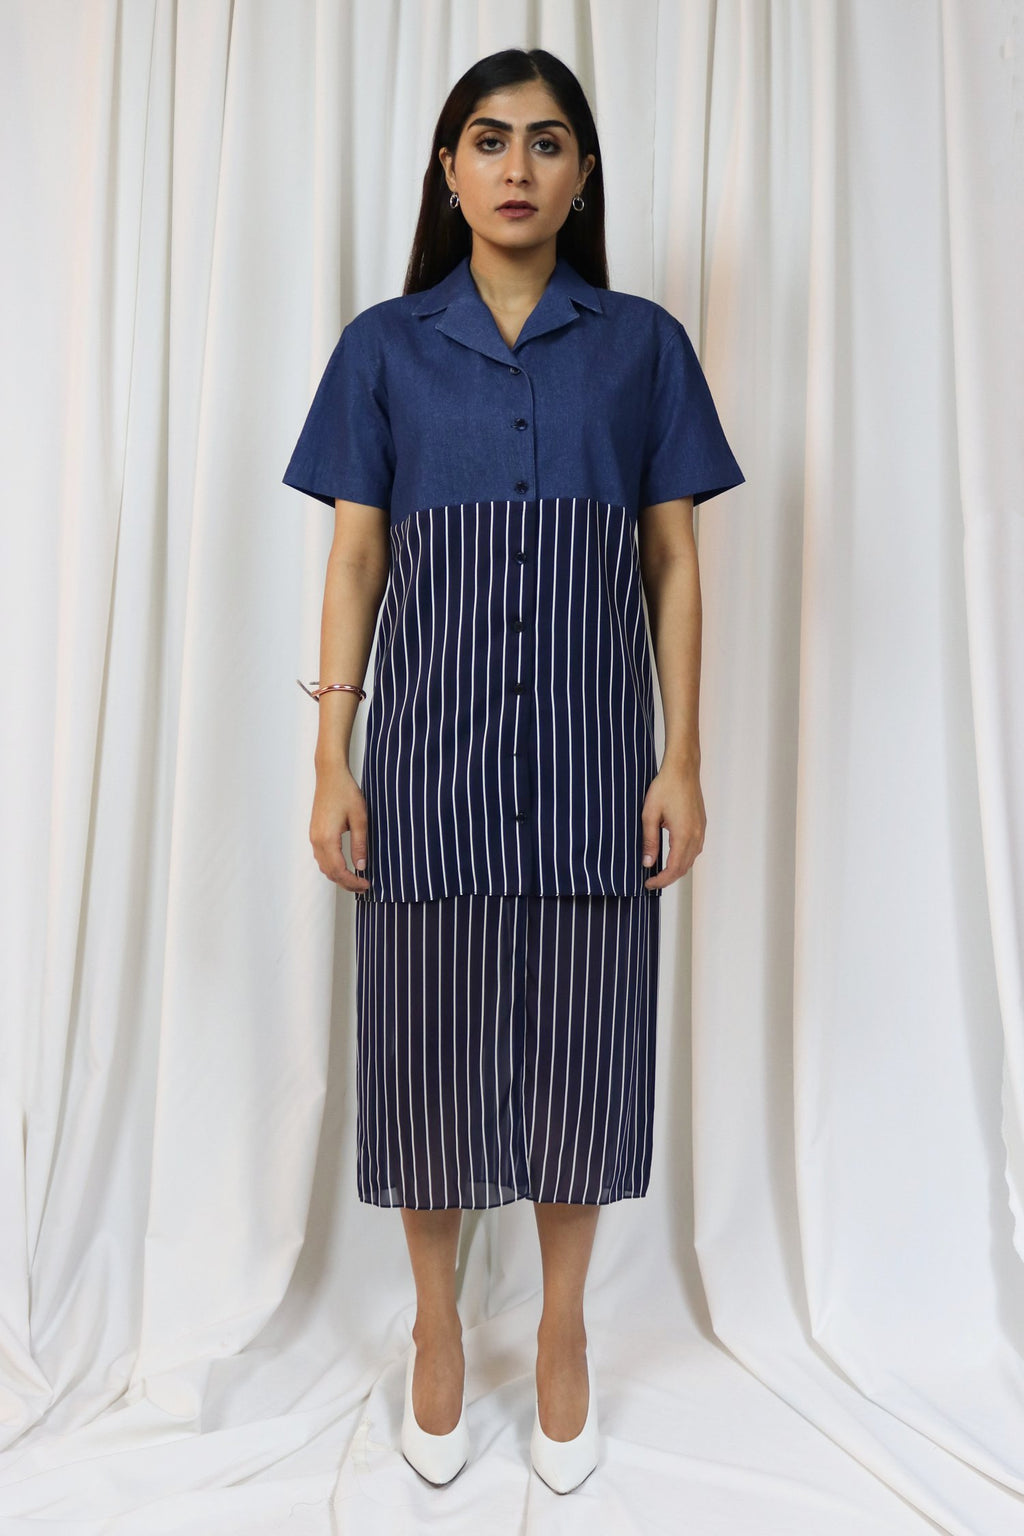 WANTS Denim Navy Chiffon layered dress